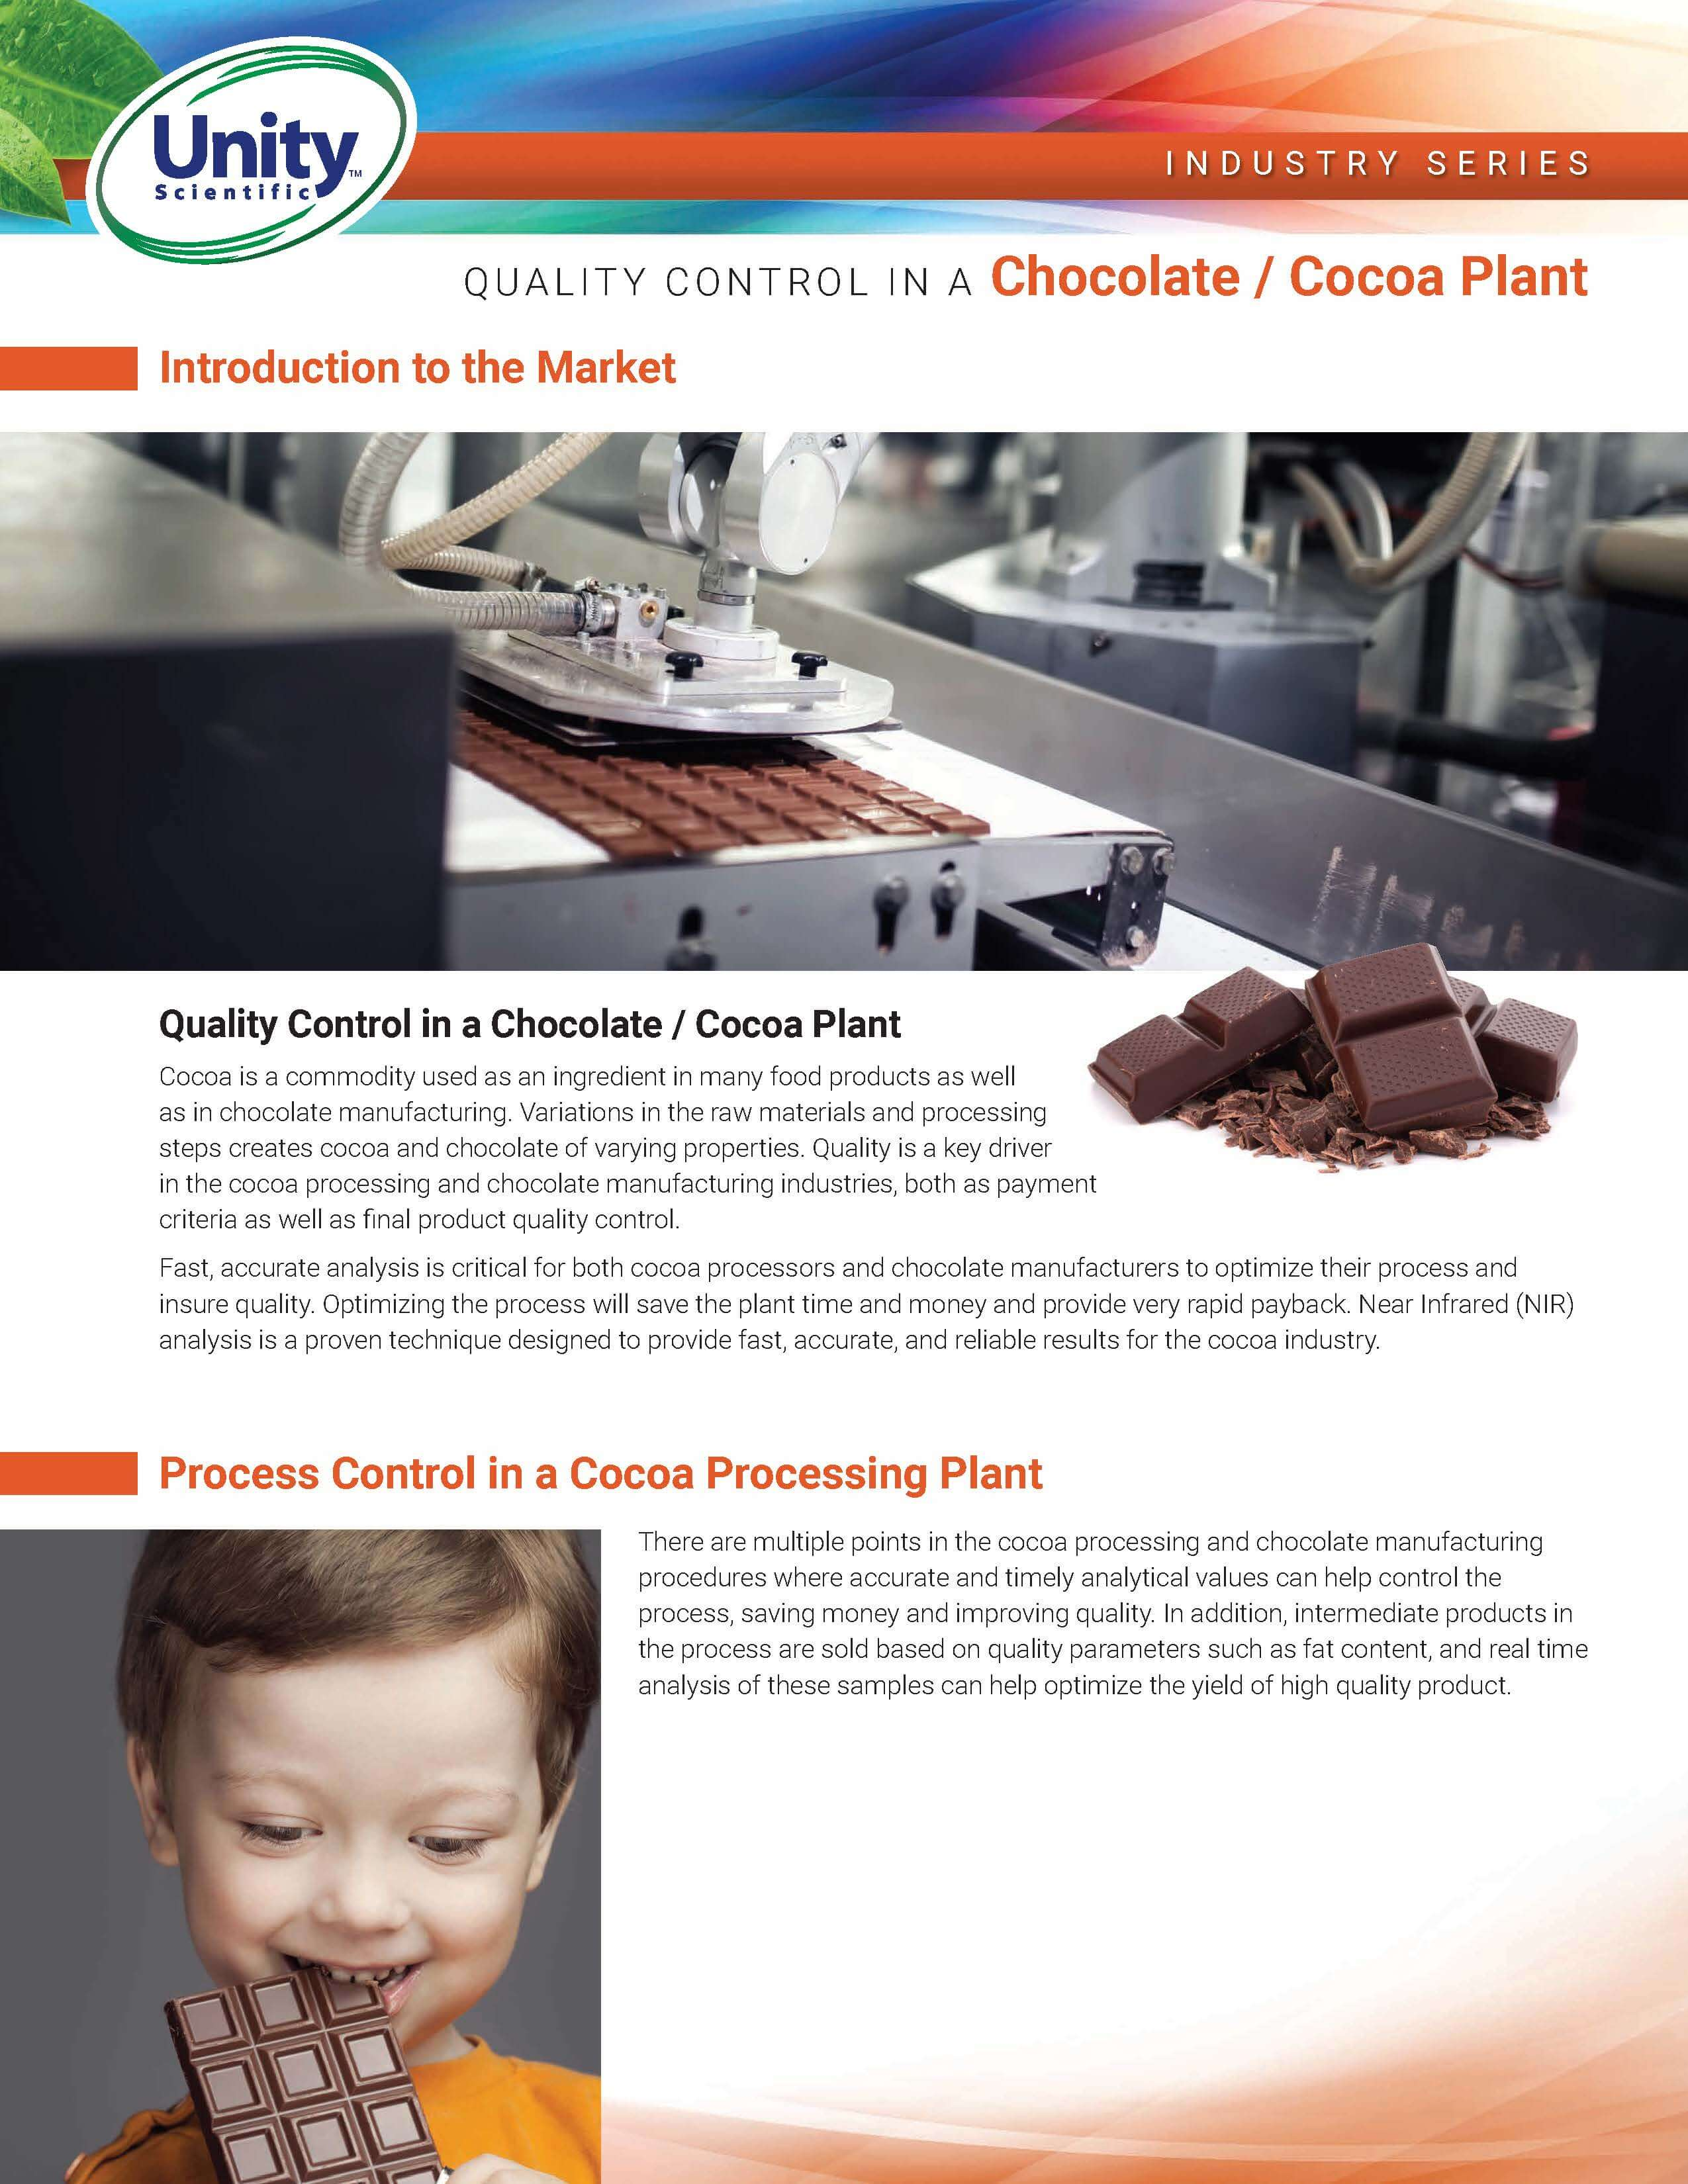 Industry Series - Quality Control In A Chocolate / Cocoa Plant